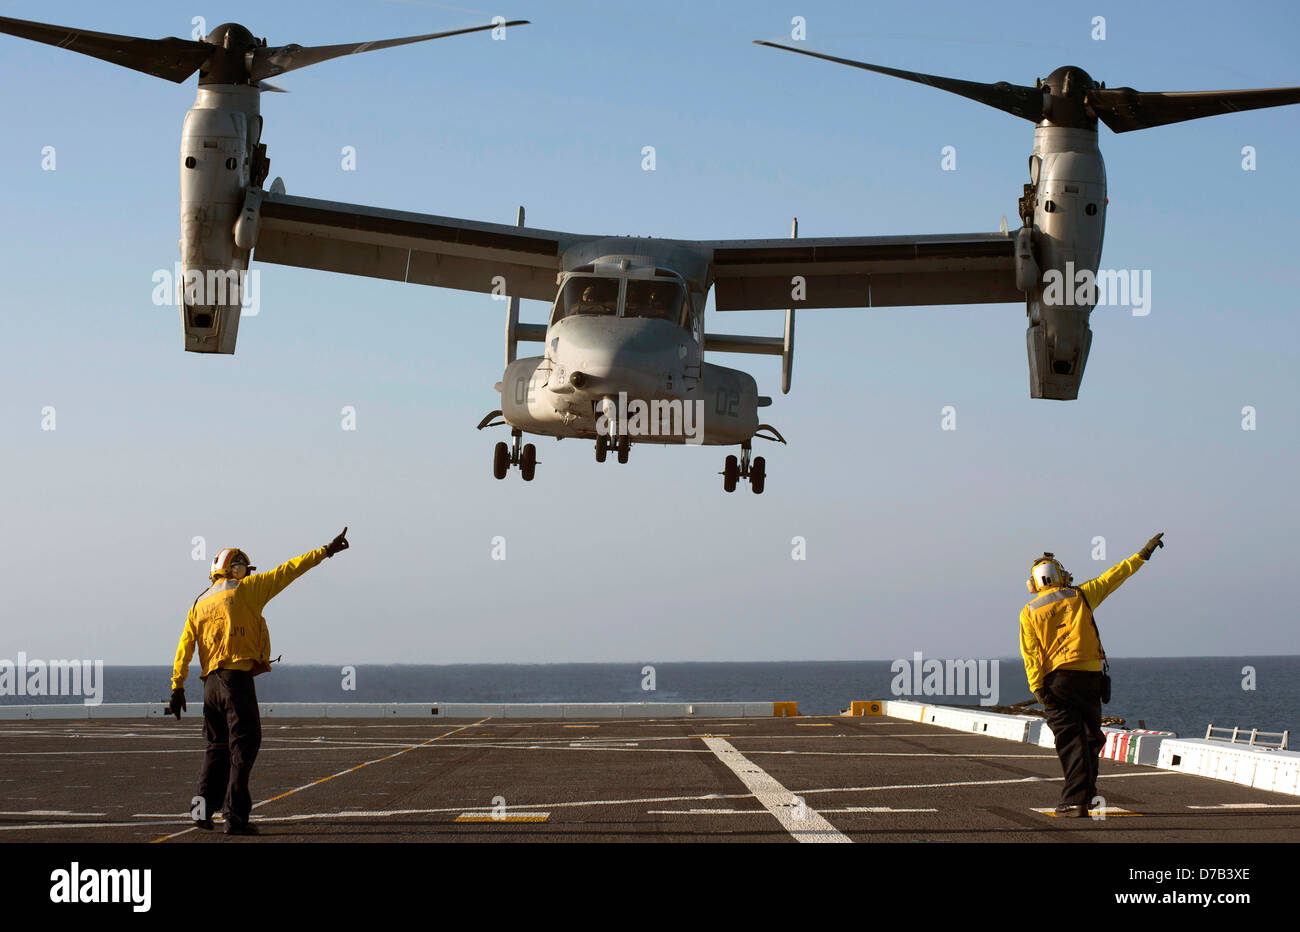 US Navy Aviation Boatswains Mates directs the launch of an MV-22 Osprey tilt rotor aircraft on the flight deck of - Stock Image